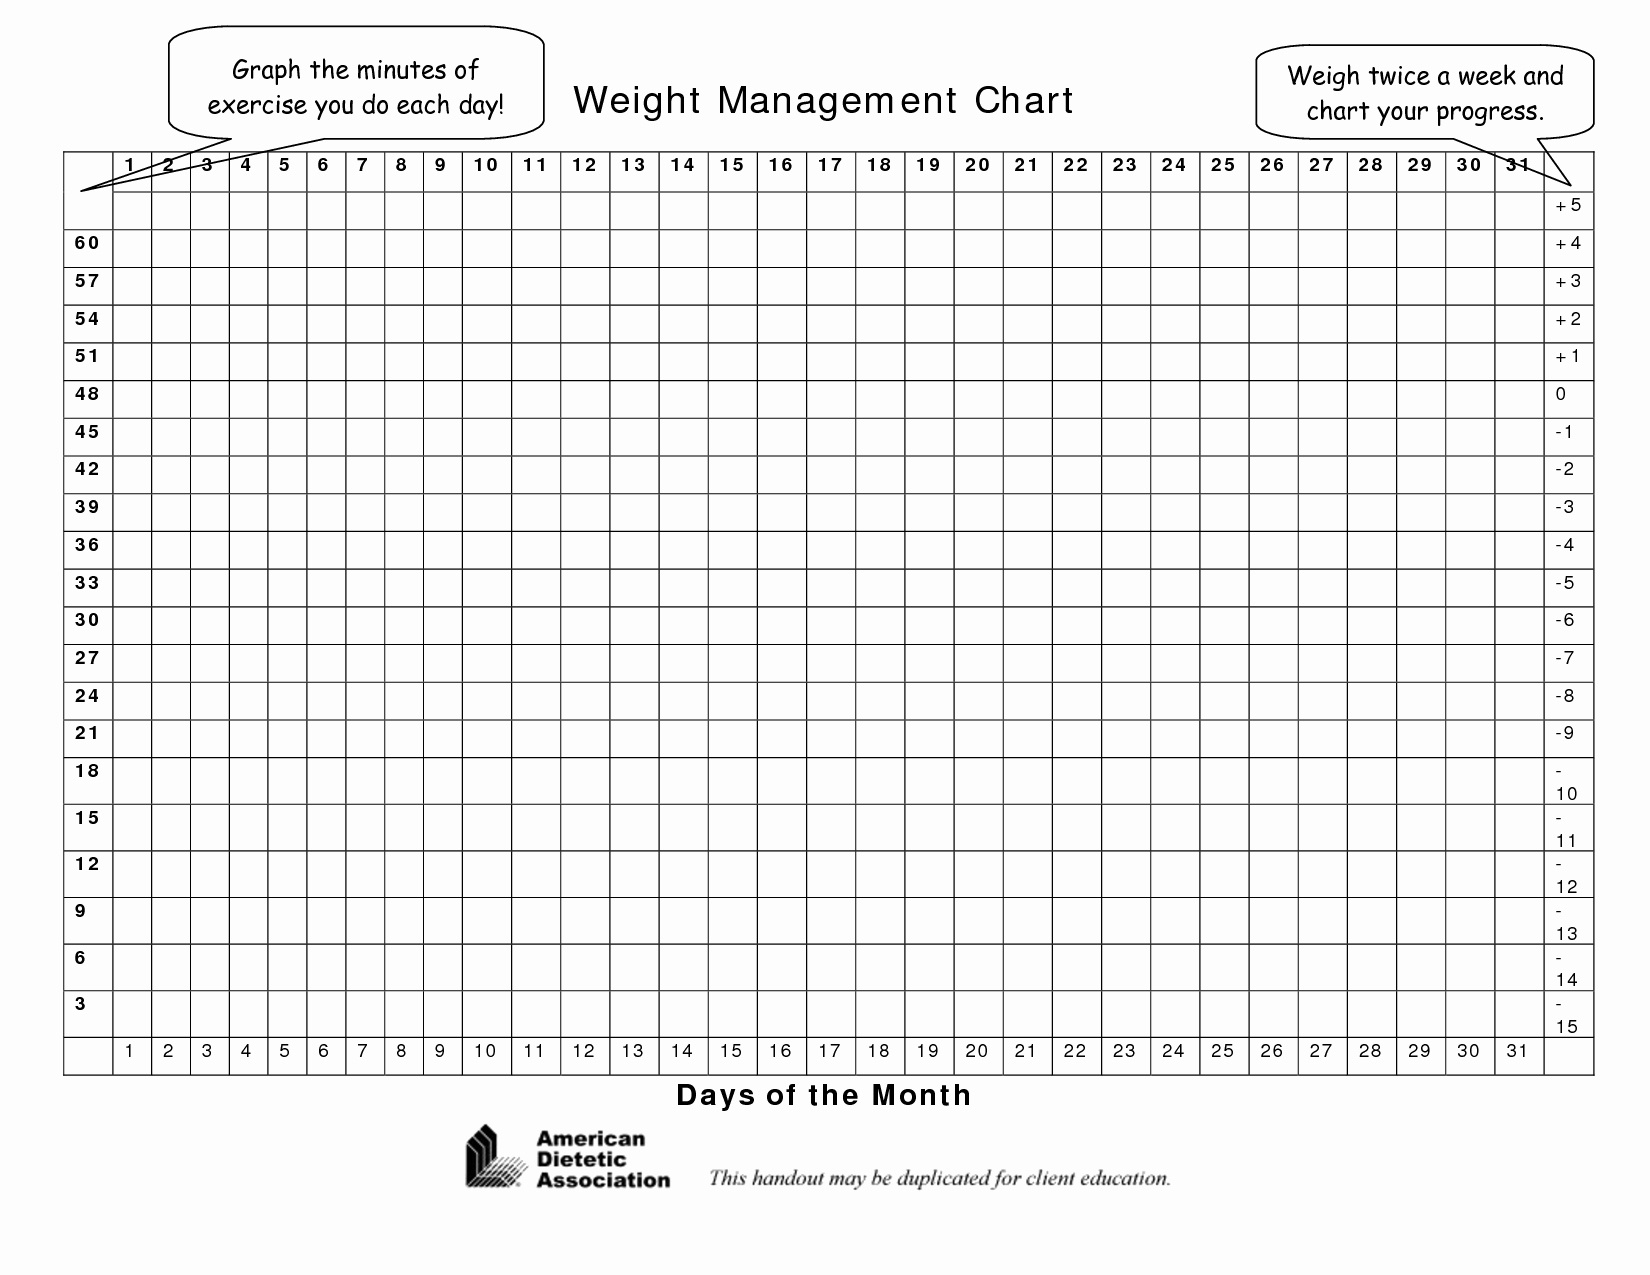 Weight Loss Graph Printable | Ellipsis - Free Printable Weight Loss Chart